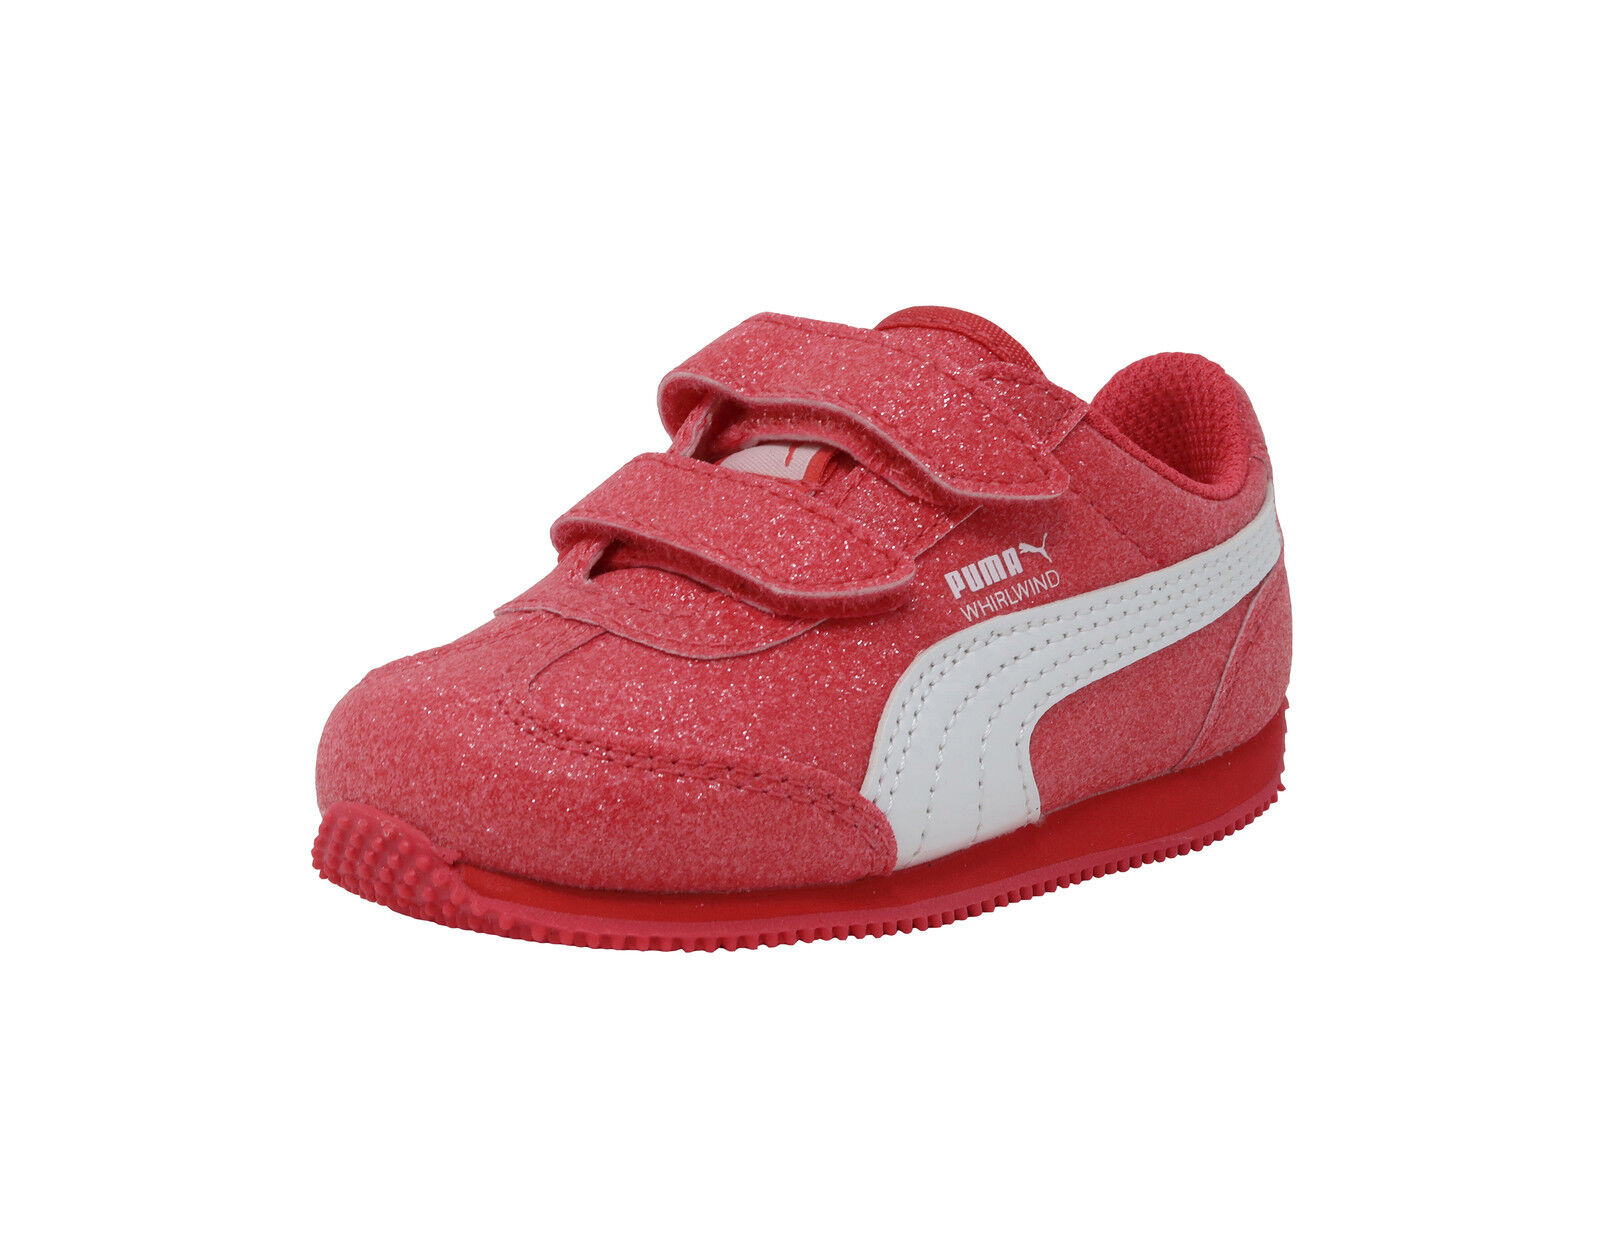 PUMA Shoes Girls Whirlwind Glitz V Toddler Infant Baby Kids Pink White Sneaker